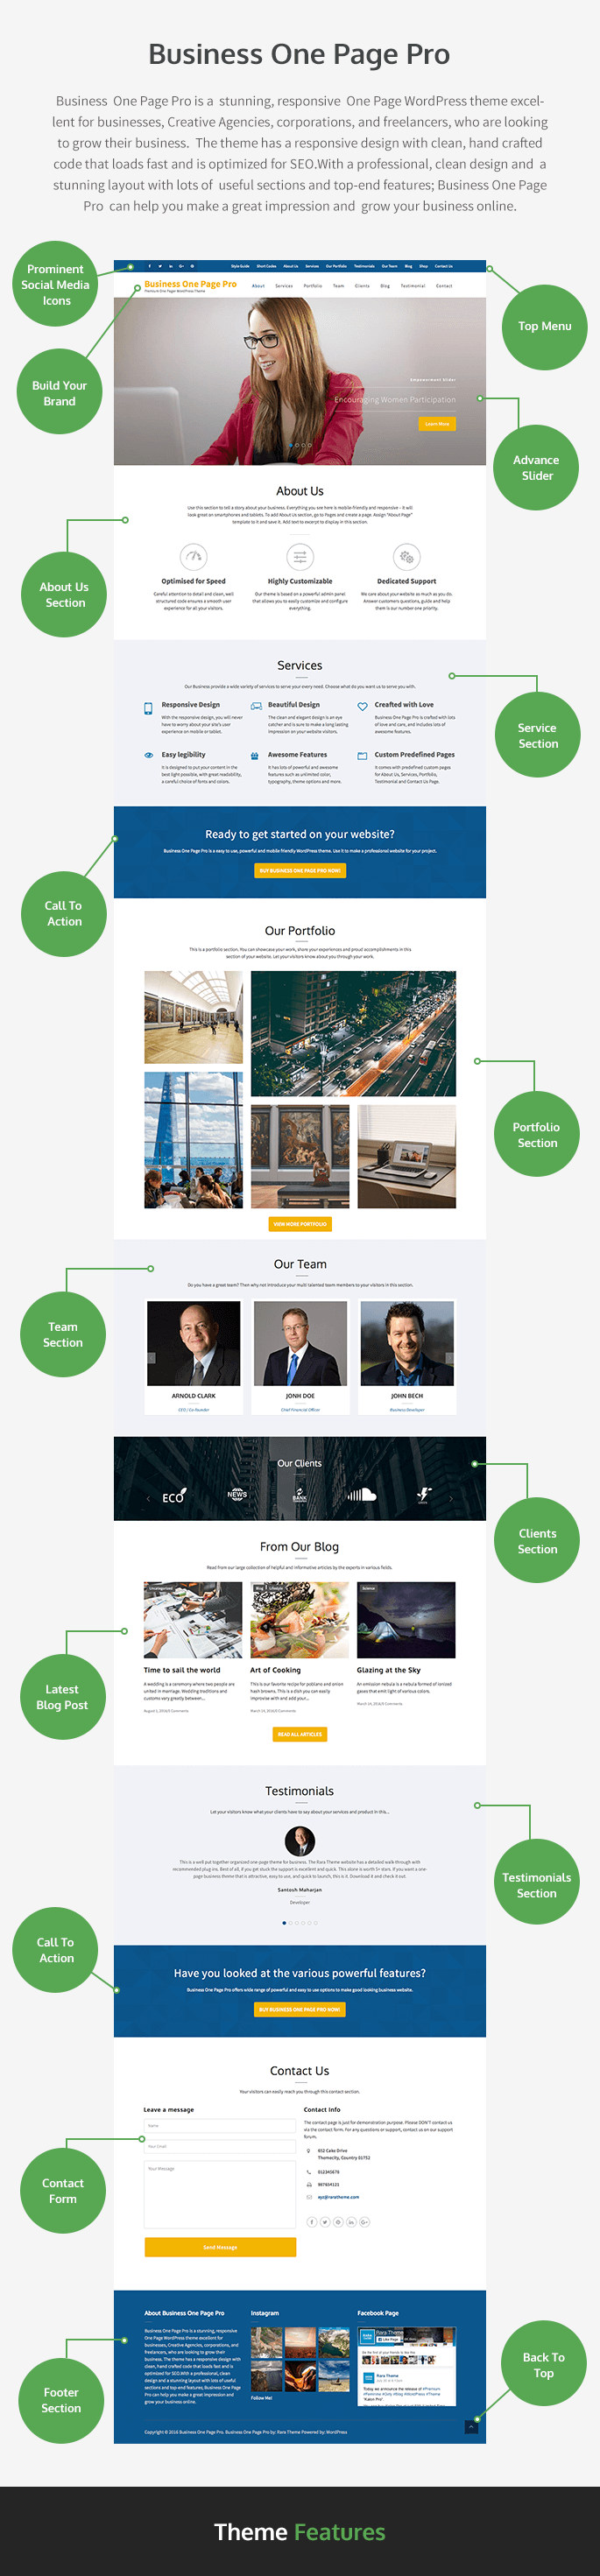 Homepage of Business One Page Pro